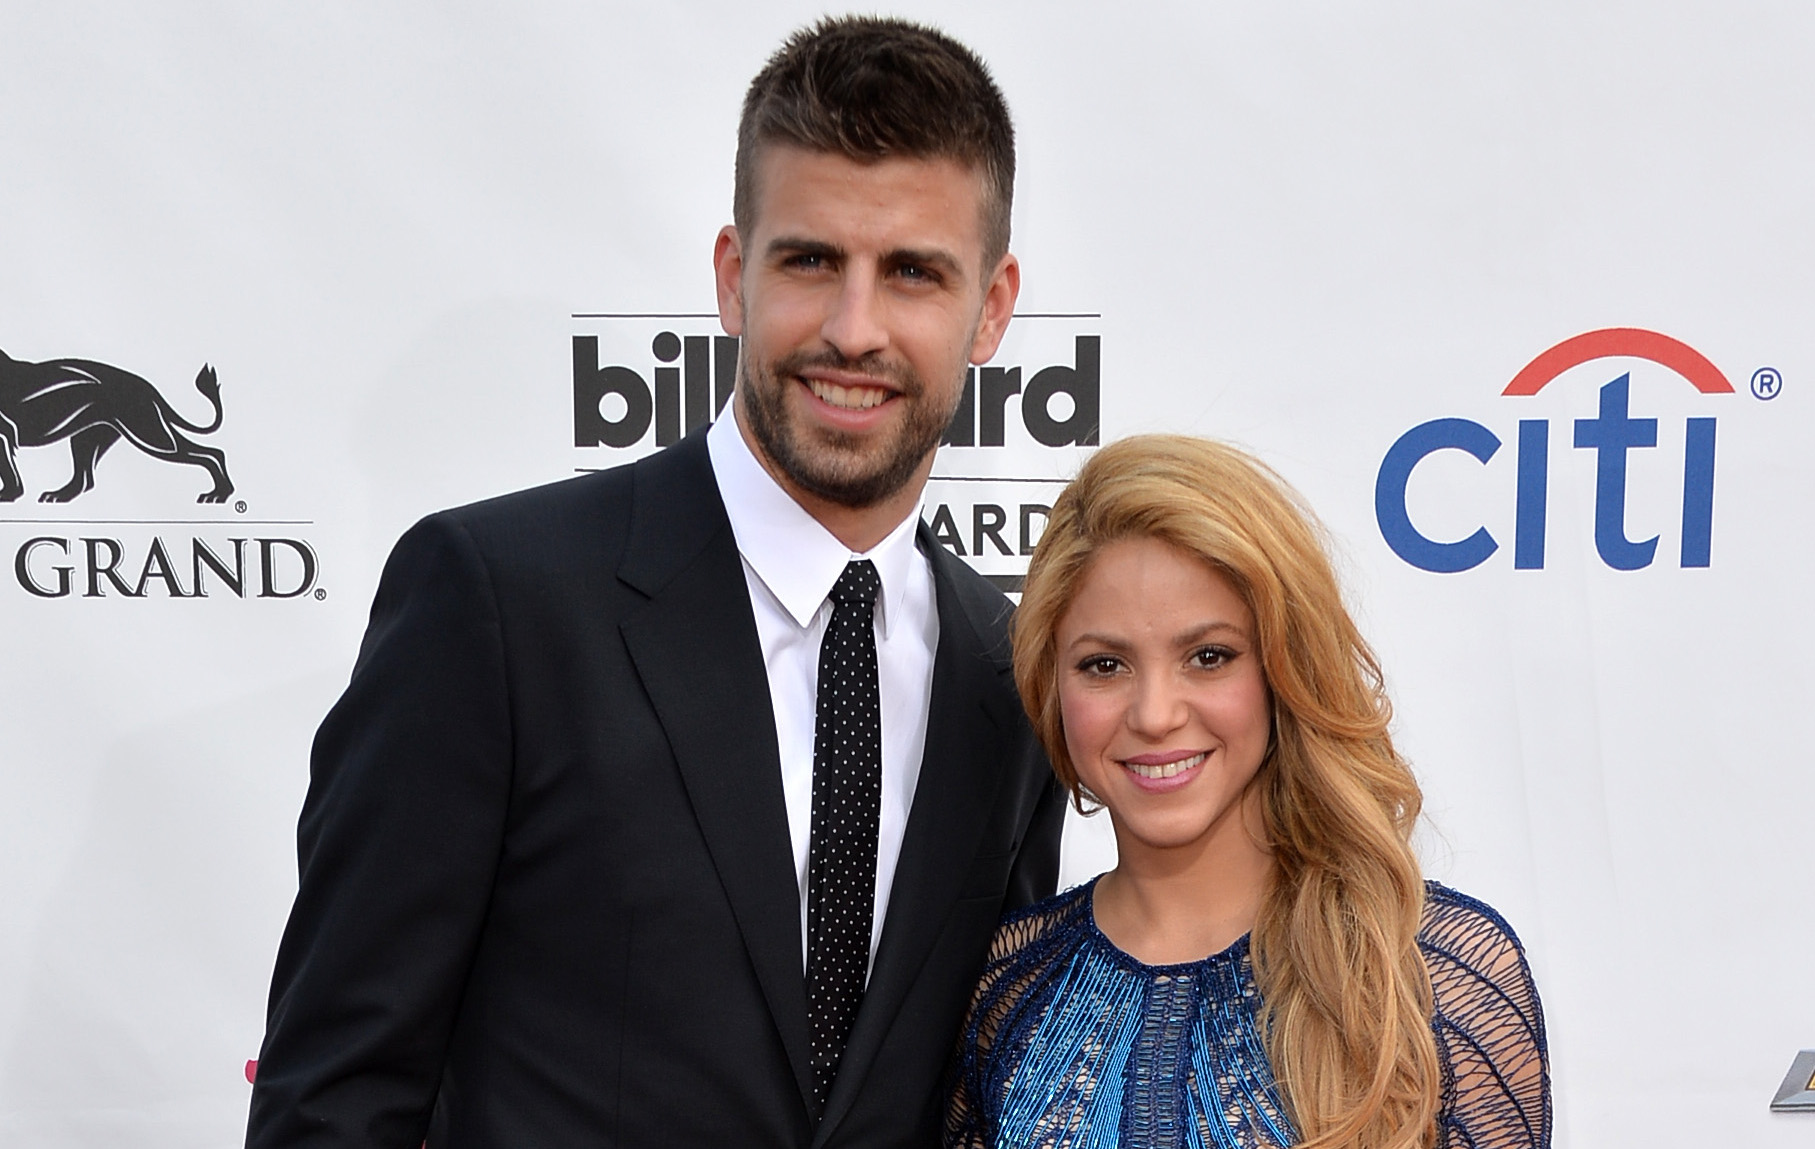 Shakira and Gerard Piqué Reportedly Split After Six Years Together